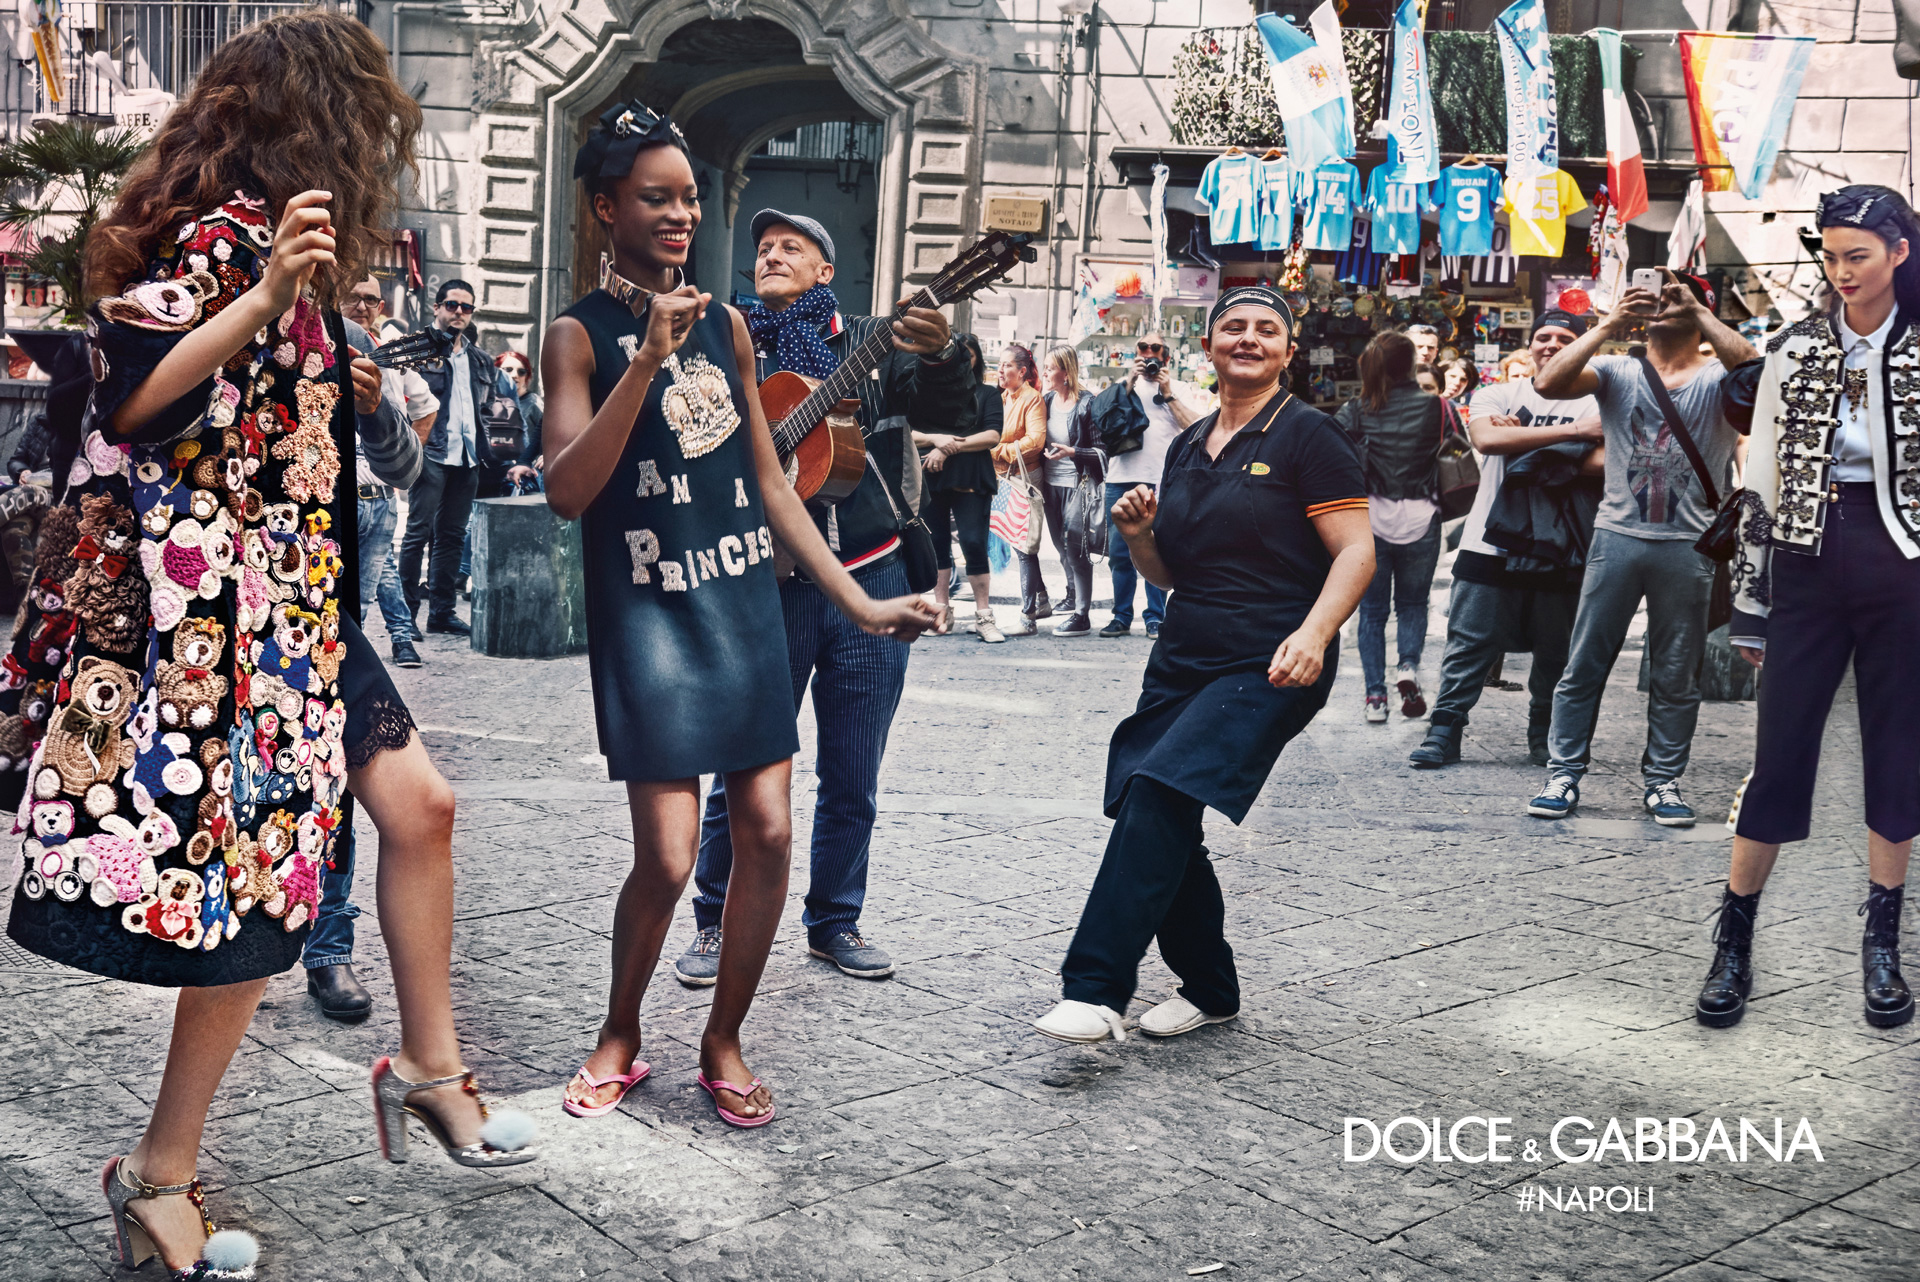 Dolce-Gabbana-Fall-Winter-2016-2017-Ad-Campaign-Naples-5